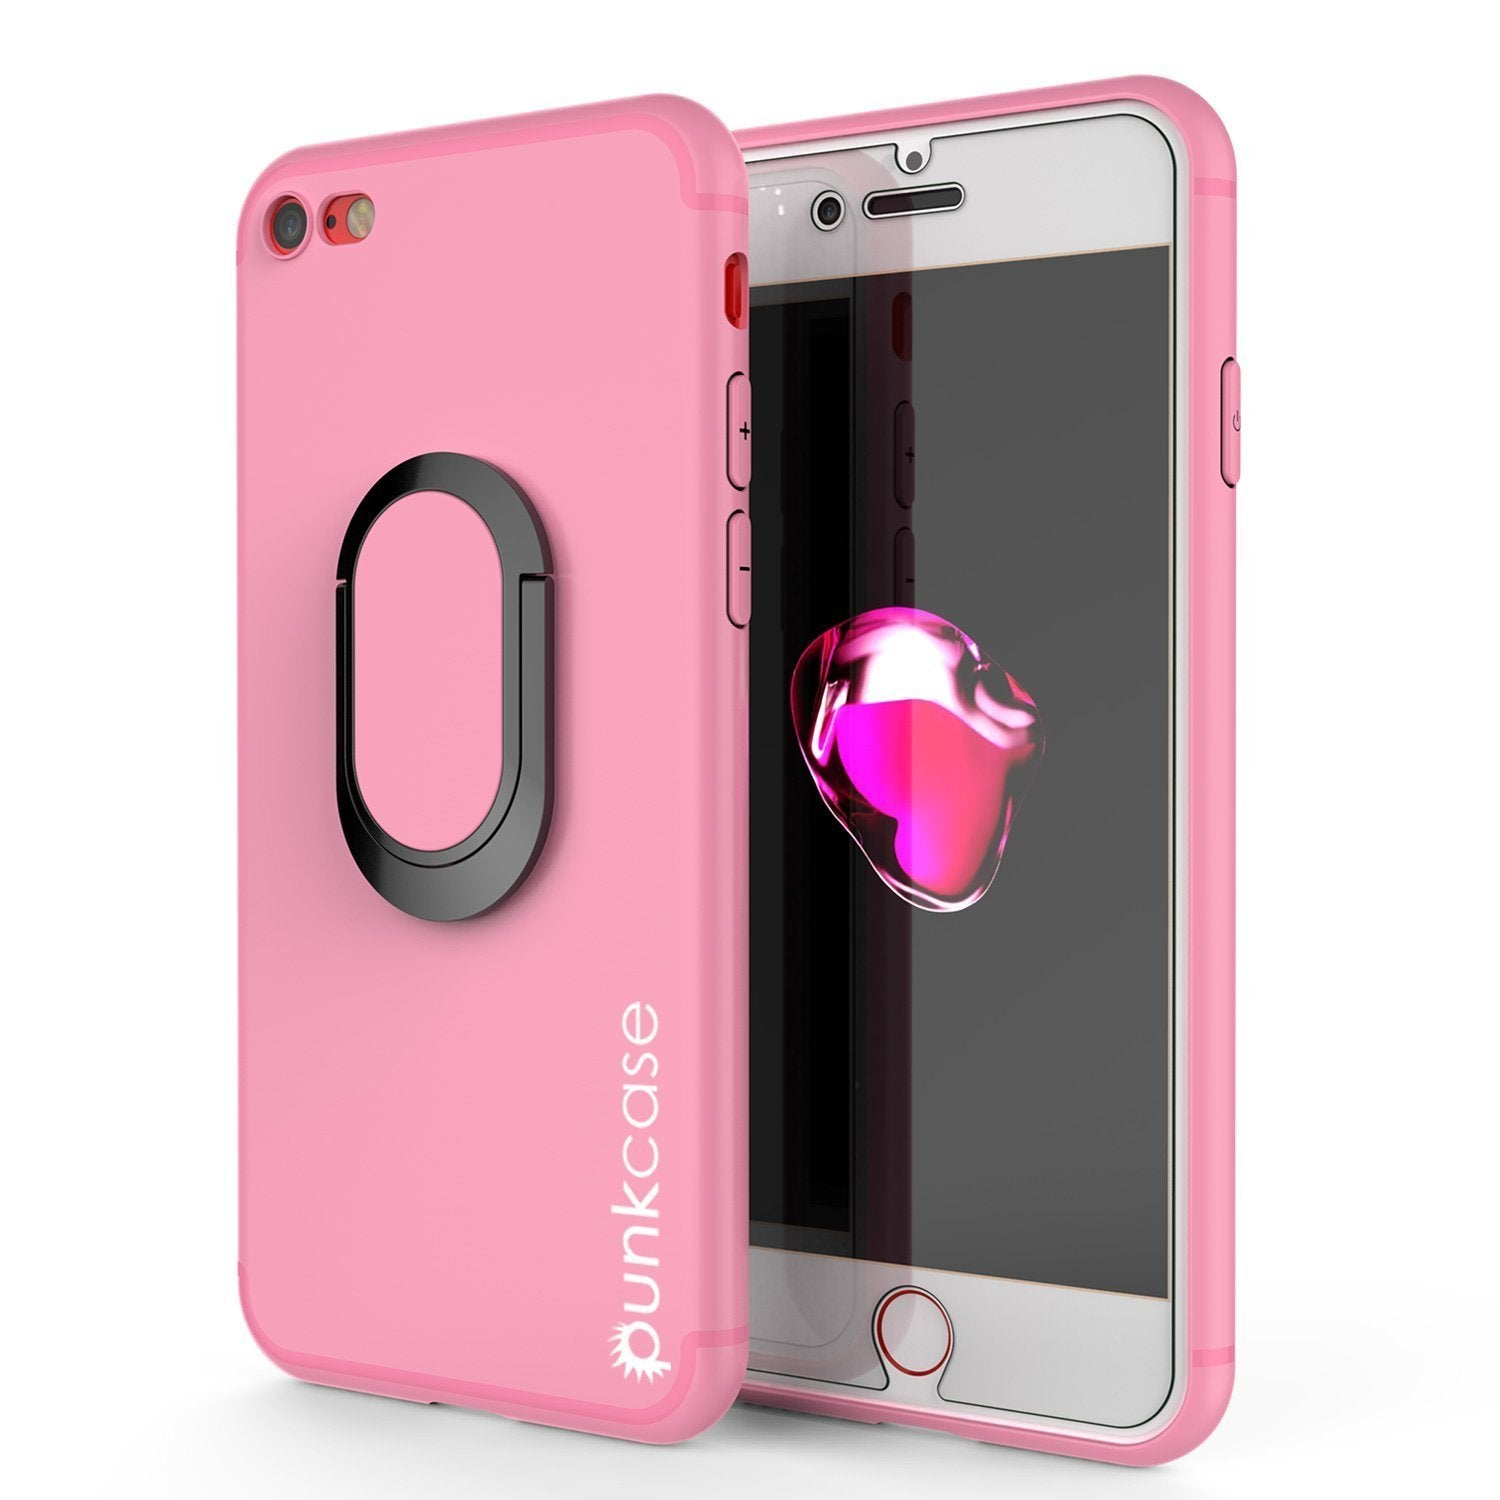 "iPhone SE (4.7"") Case, Punkcase Magnetix Protective TPU Cover W/ Kickstand, Tempered Glass Screen Protector [pink]"